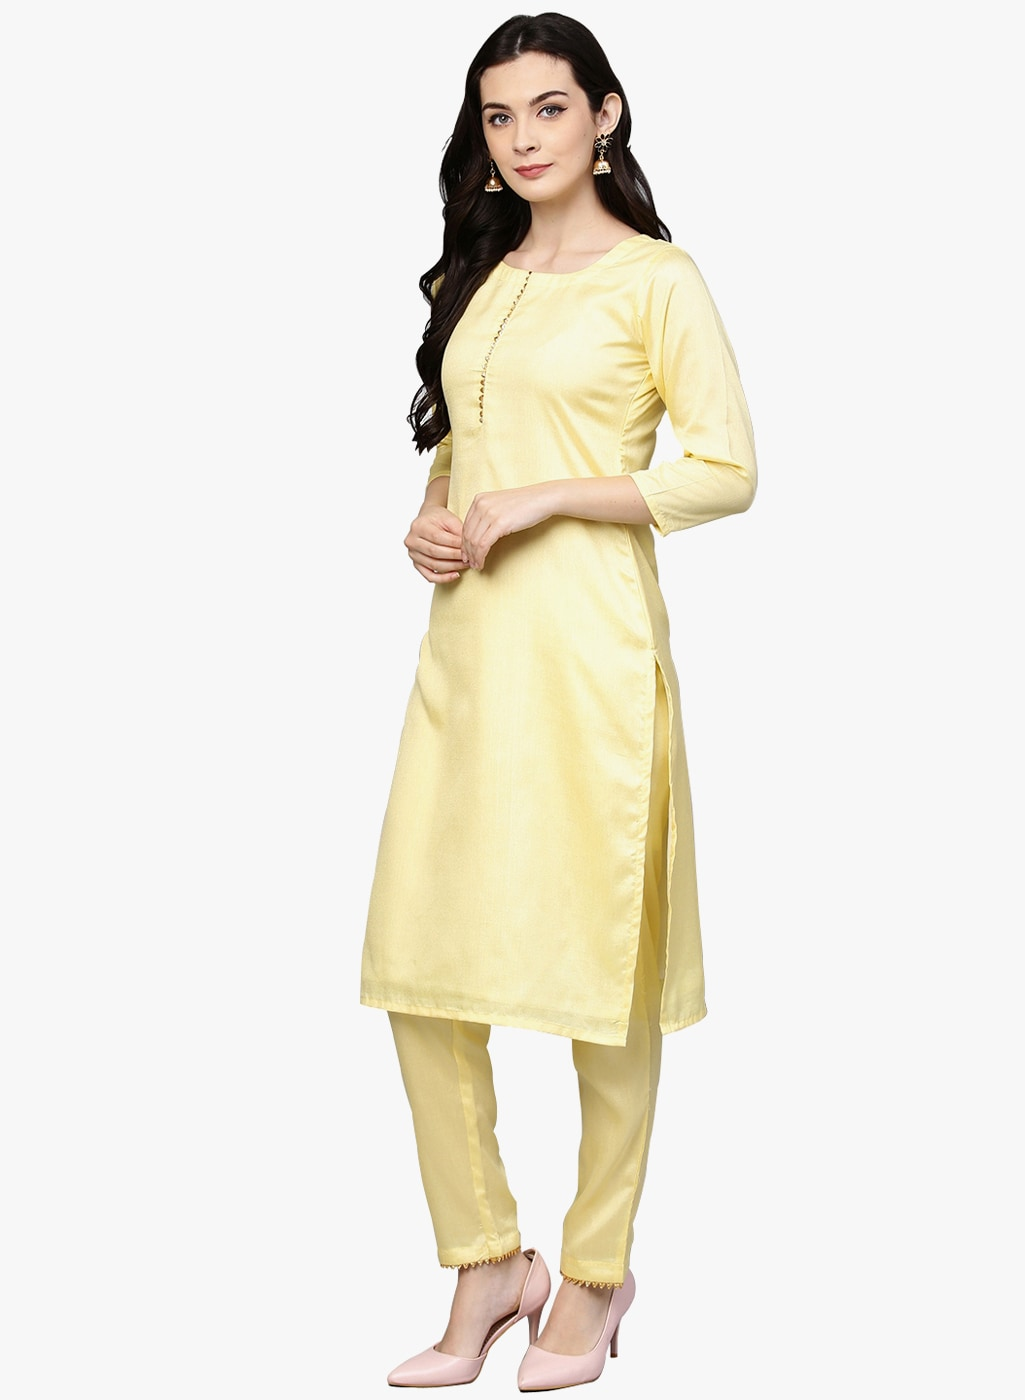 8002563fa7 Women Apparel - Buy Women Apparel online in India - Jabong